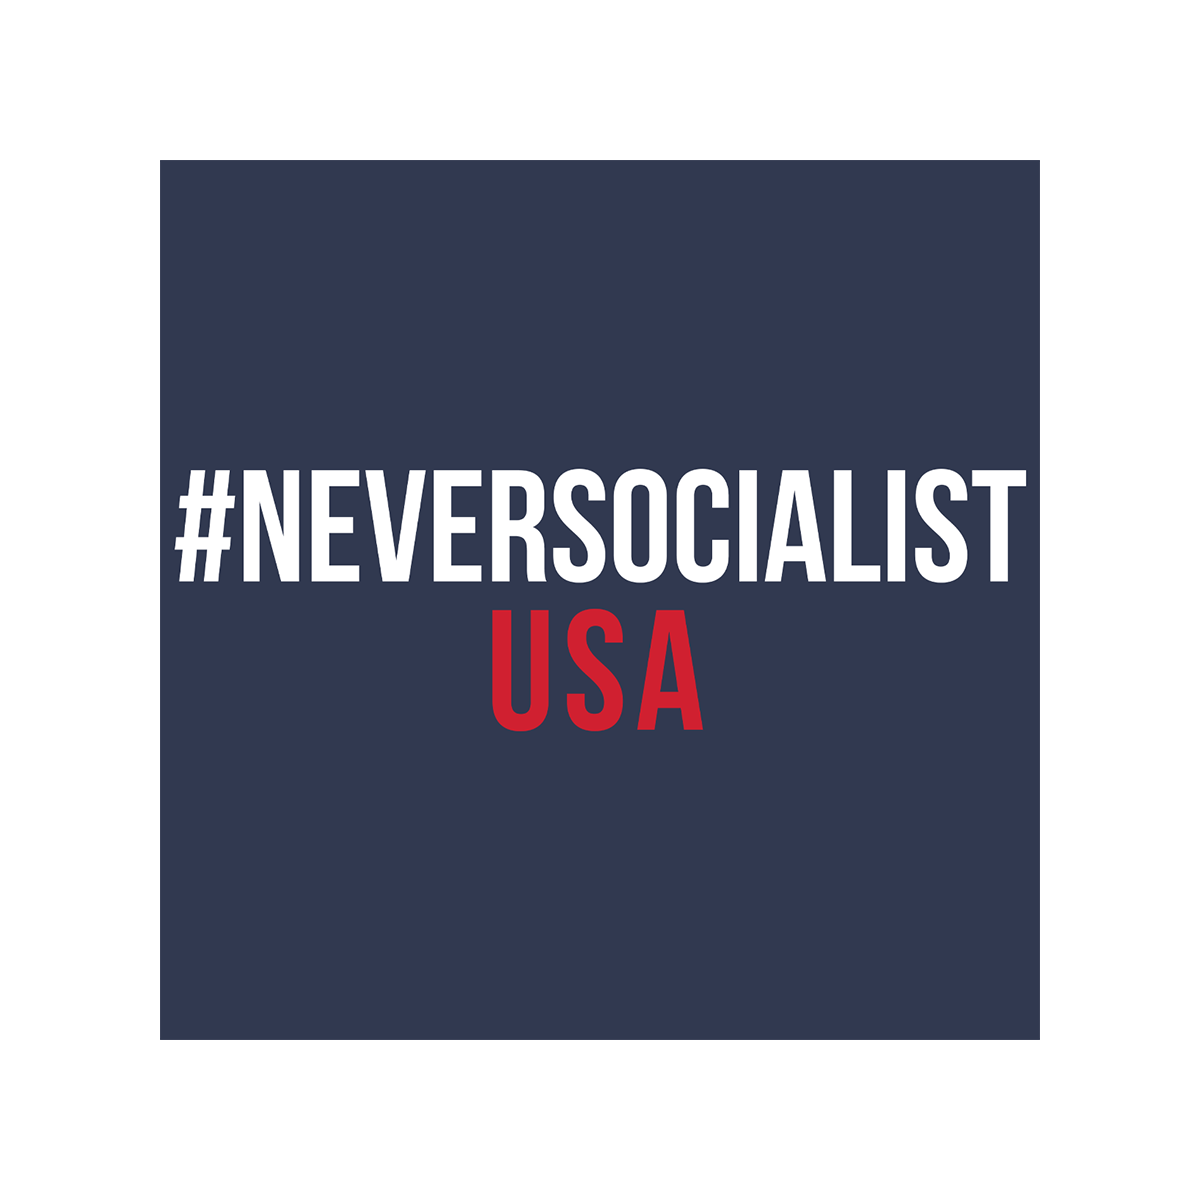 NeverSocialist USA Long Sleeve T Shirt Navy